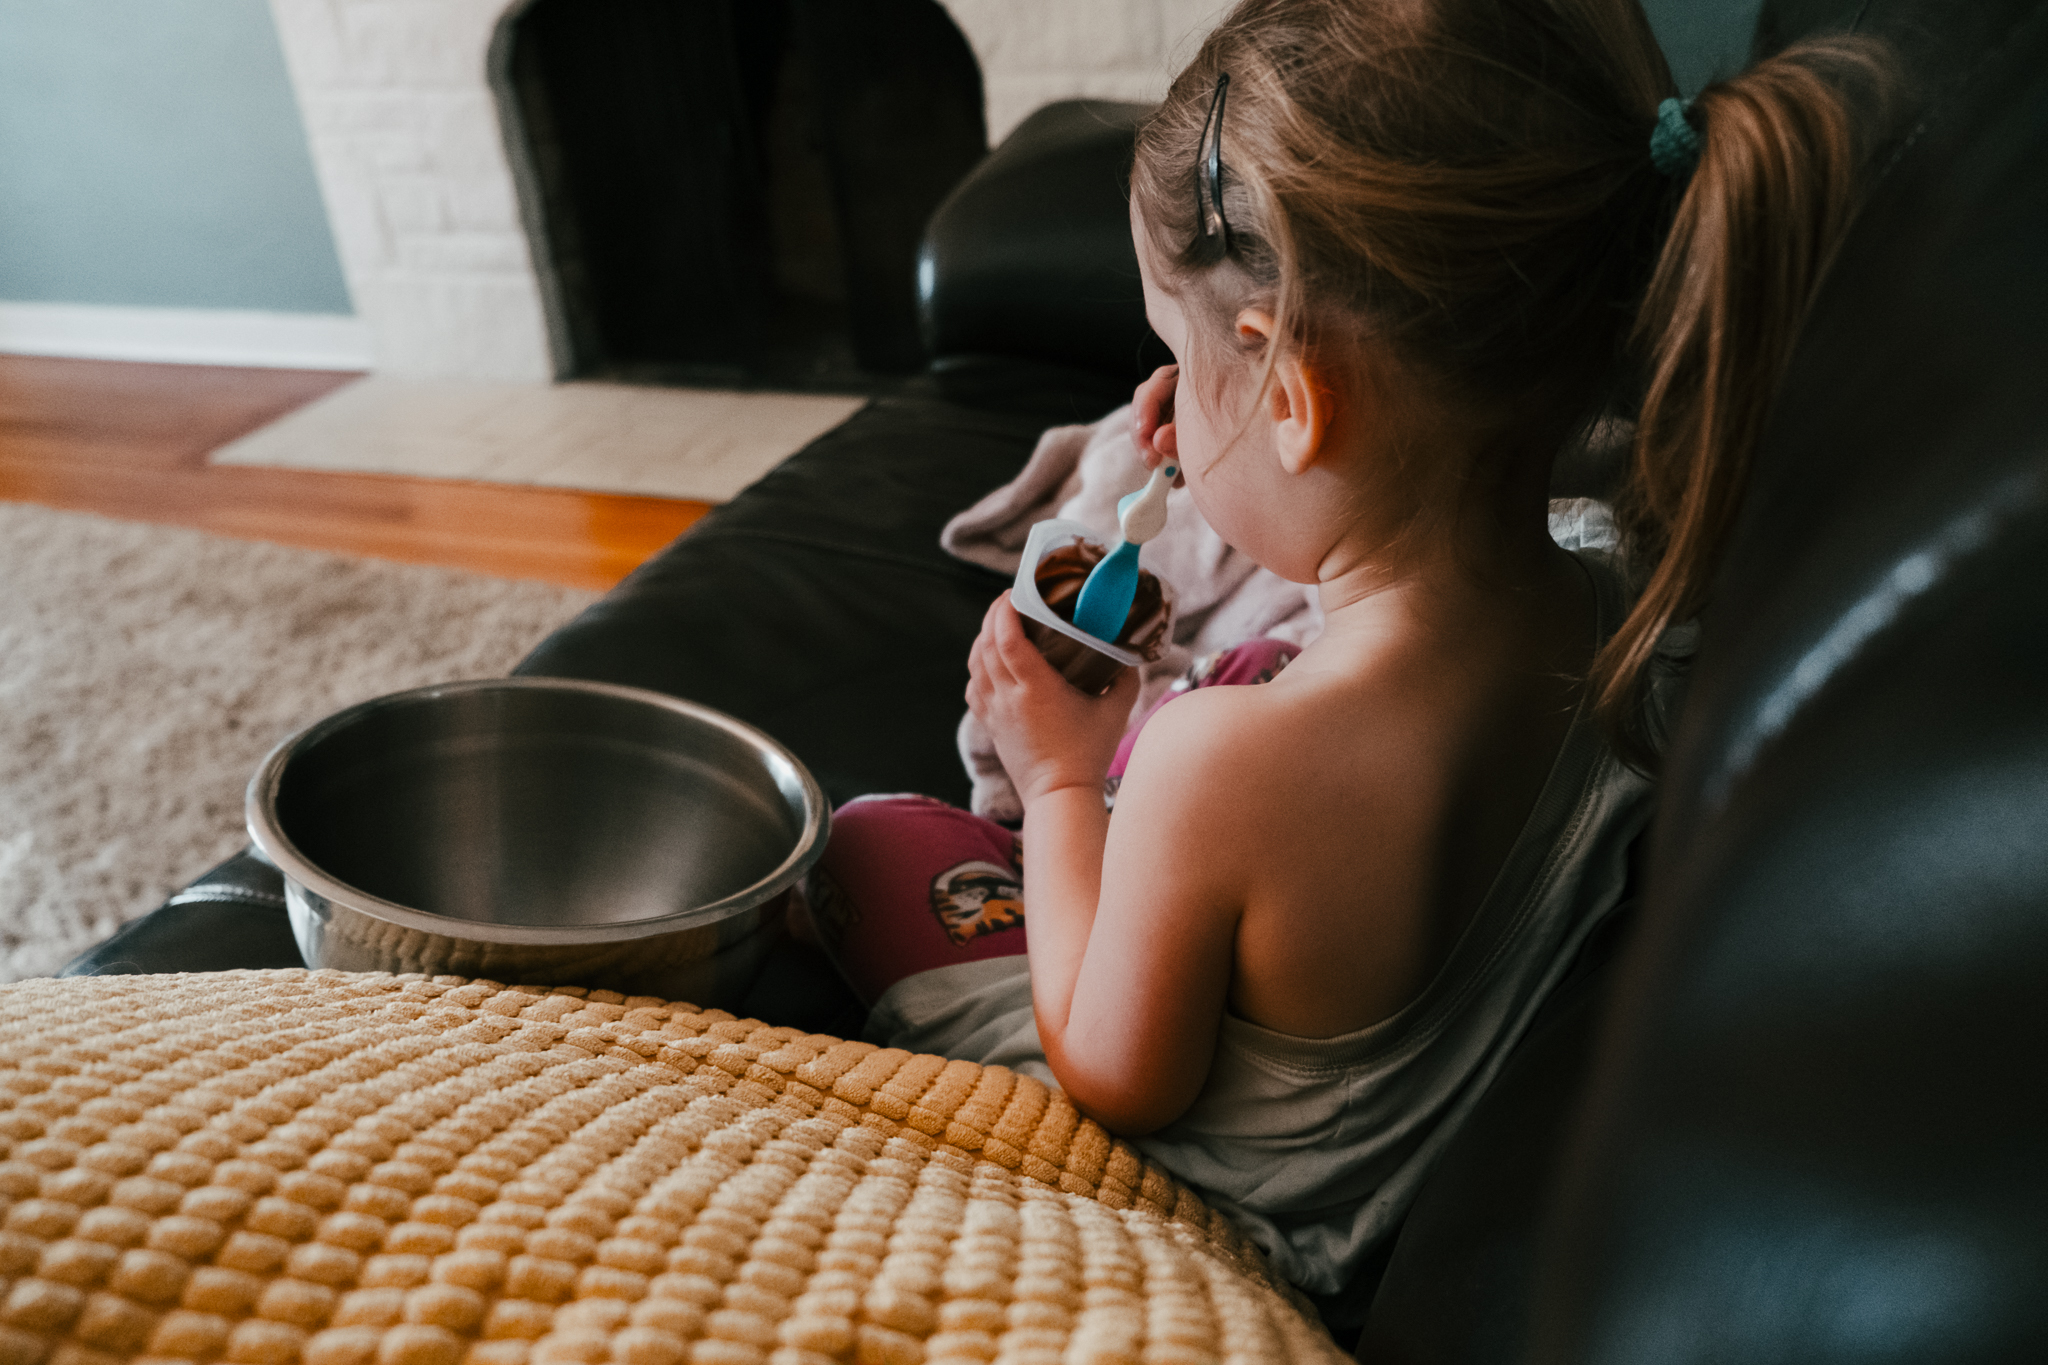 girl eating pudding on couch